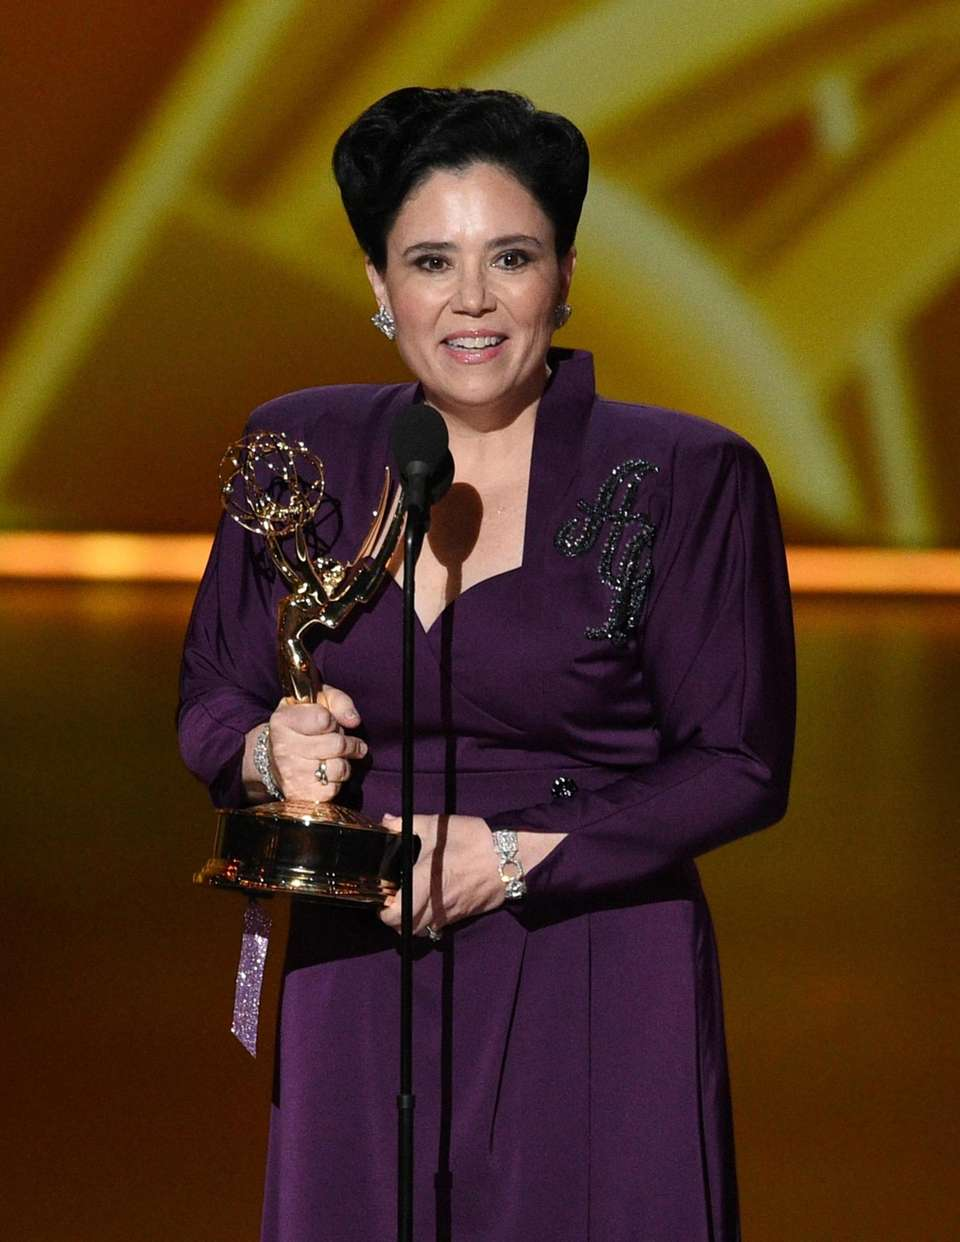 Alex Borstein accepts the award for outstanding supporting